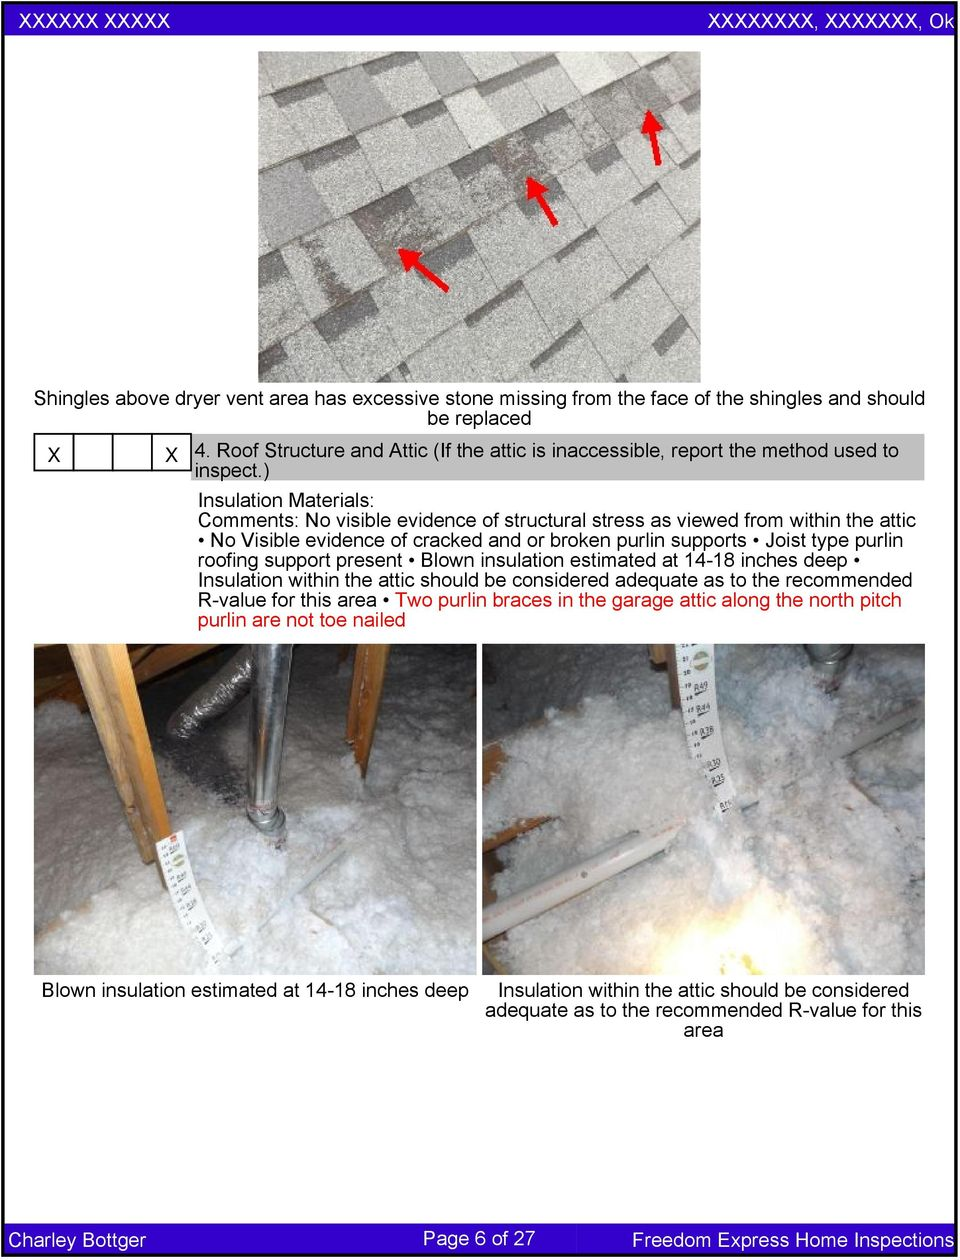 ) Insulation Materials: Comments: No visible evidence of structural stress as viewed from within the attic No Visible evidence of cracked and or broken purlin supports Joist type purlin roofing